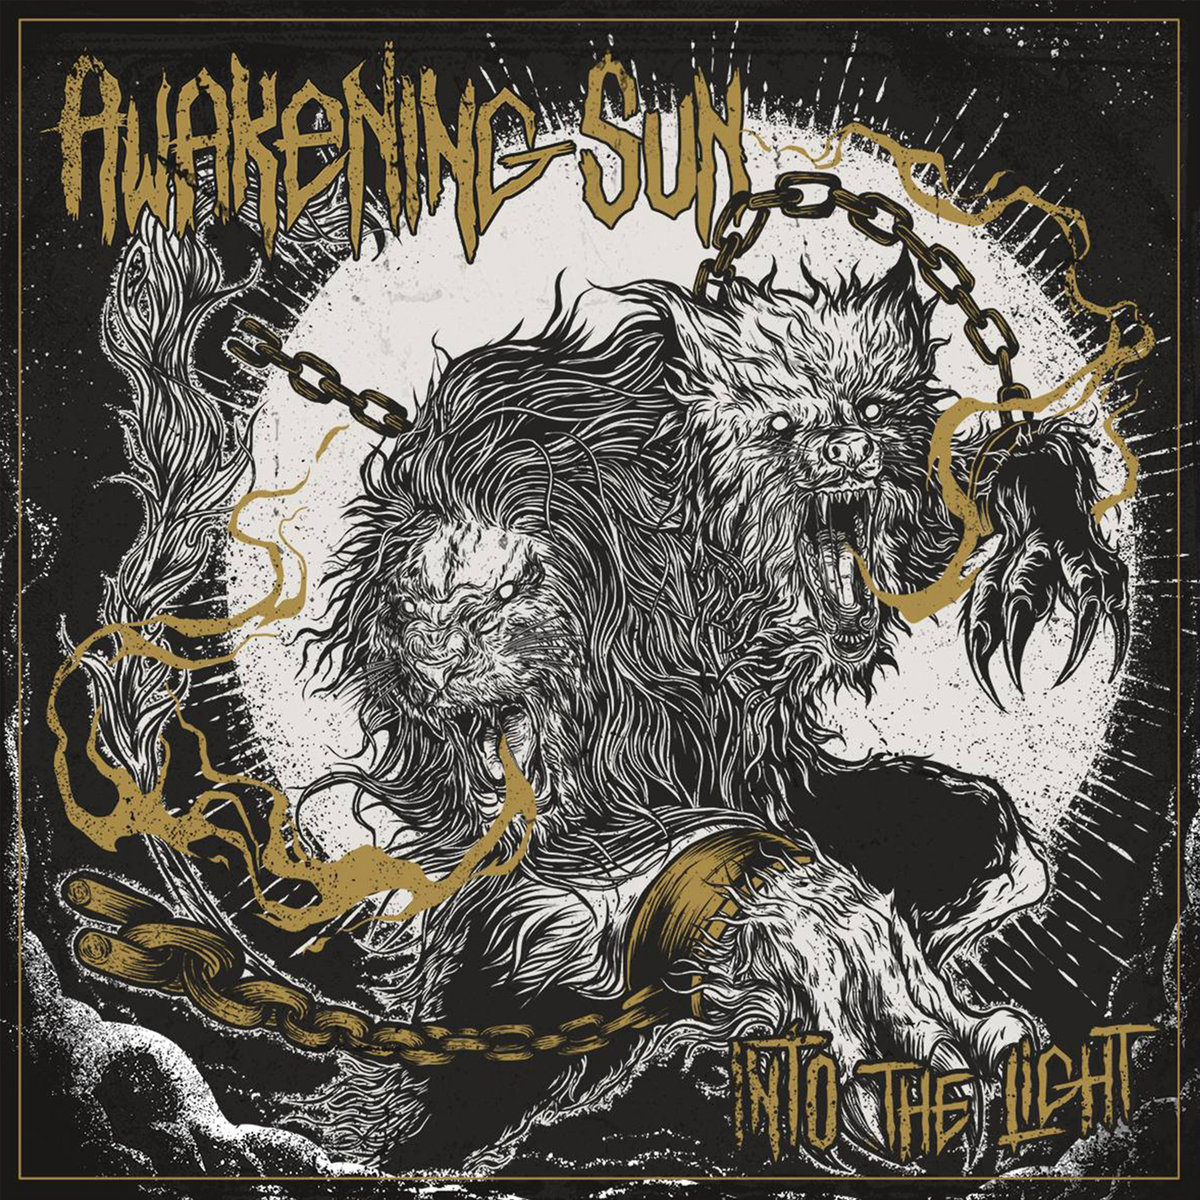 Awakening Sun - Void Silence / The Voice Inside / Desire [Singles] (2019)